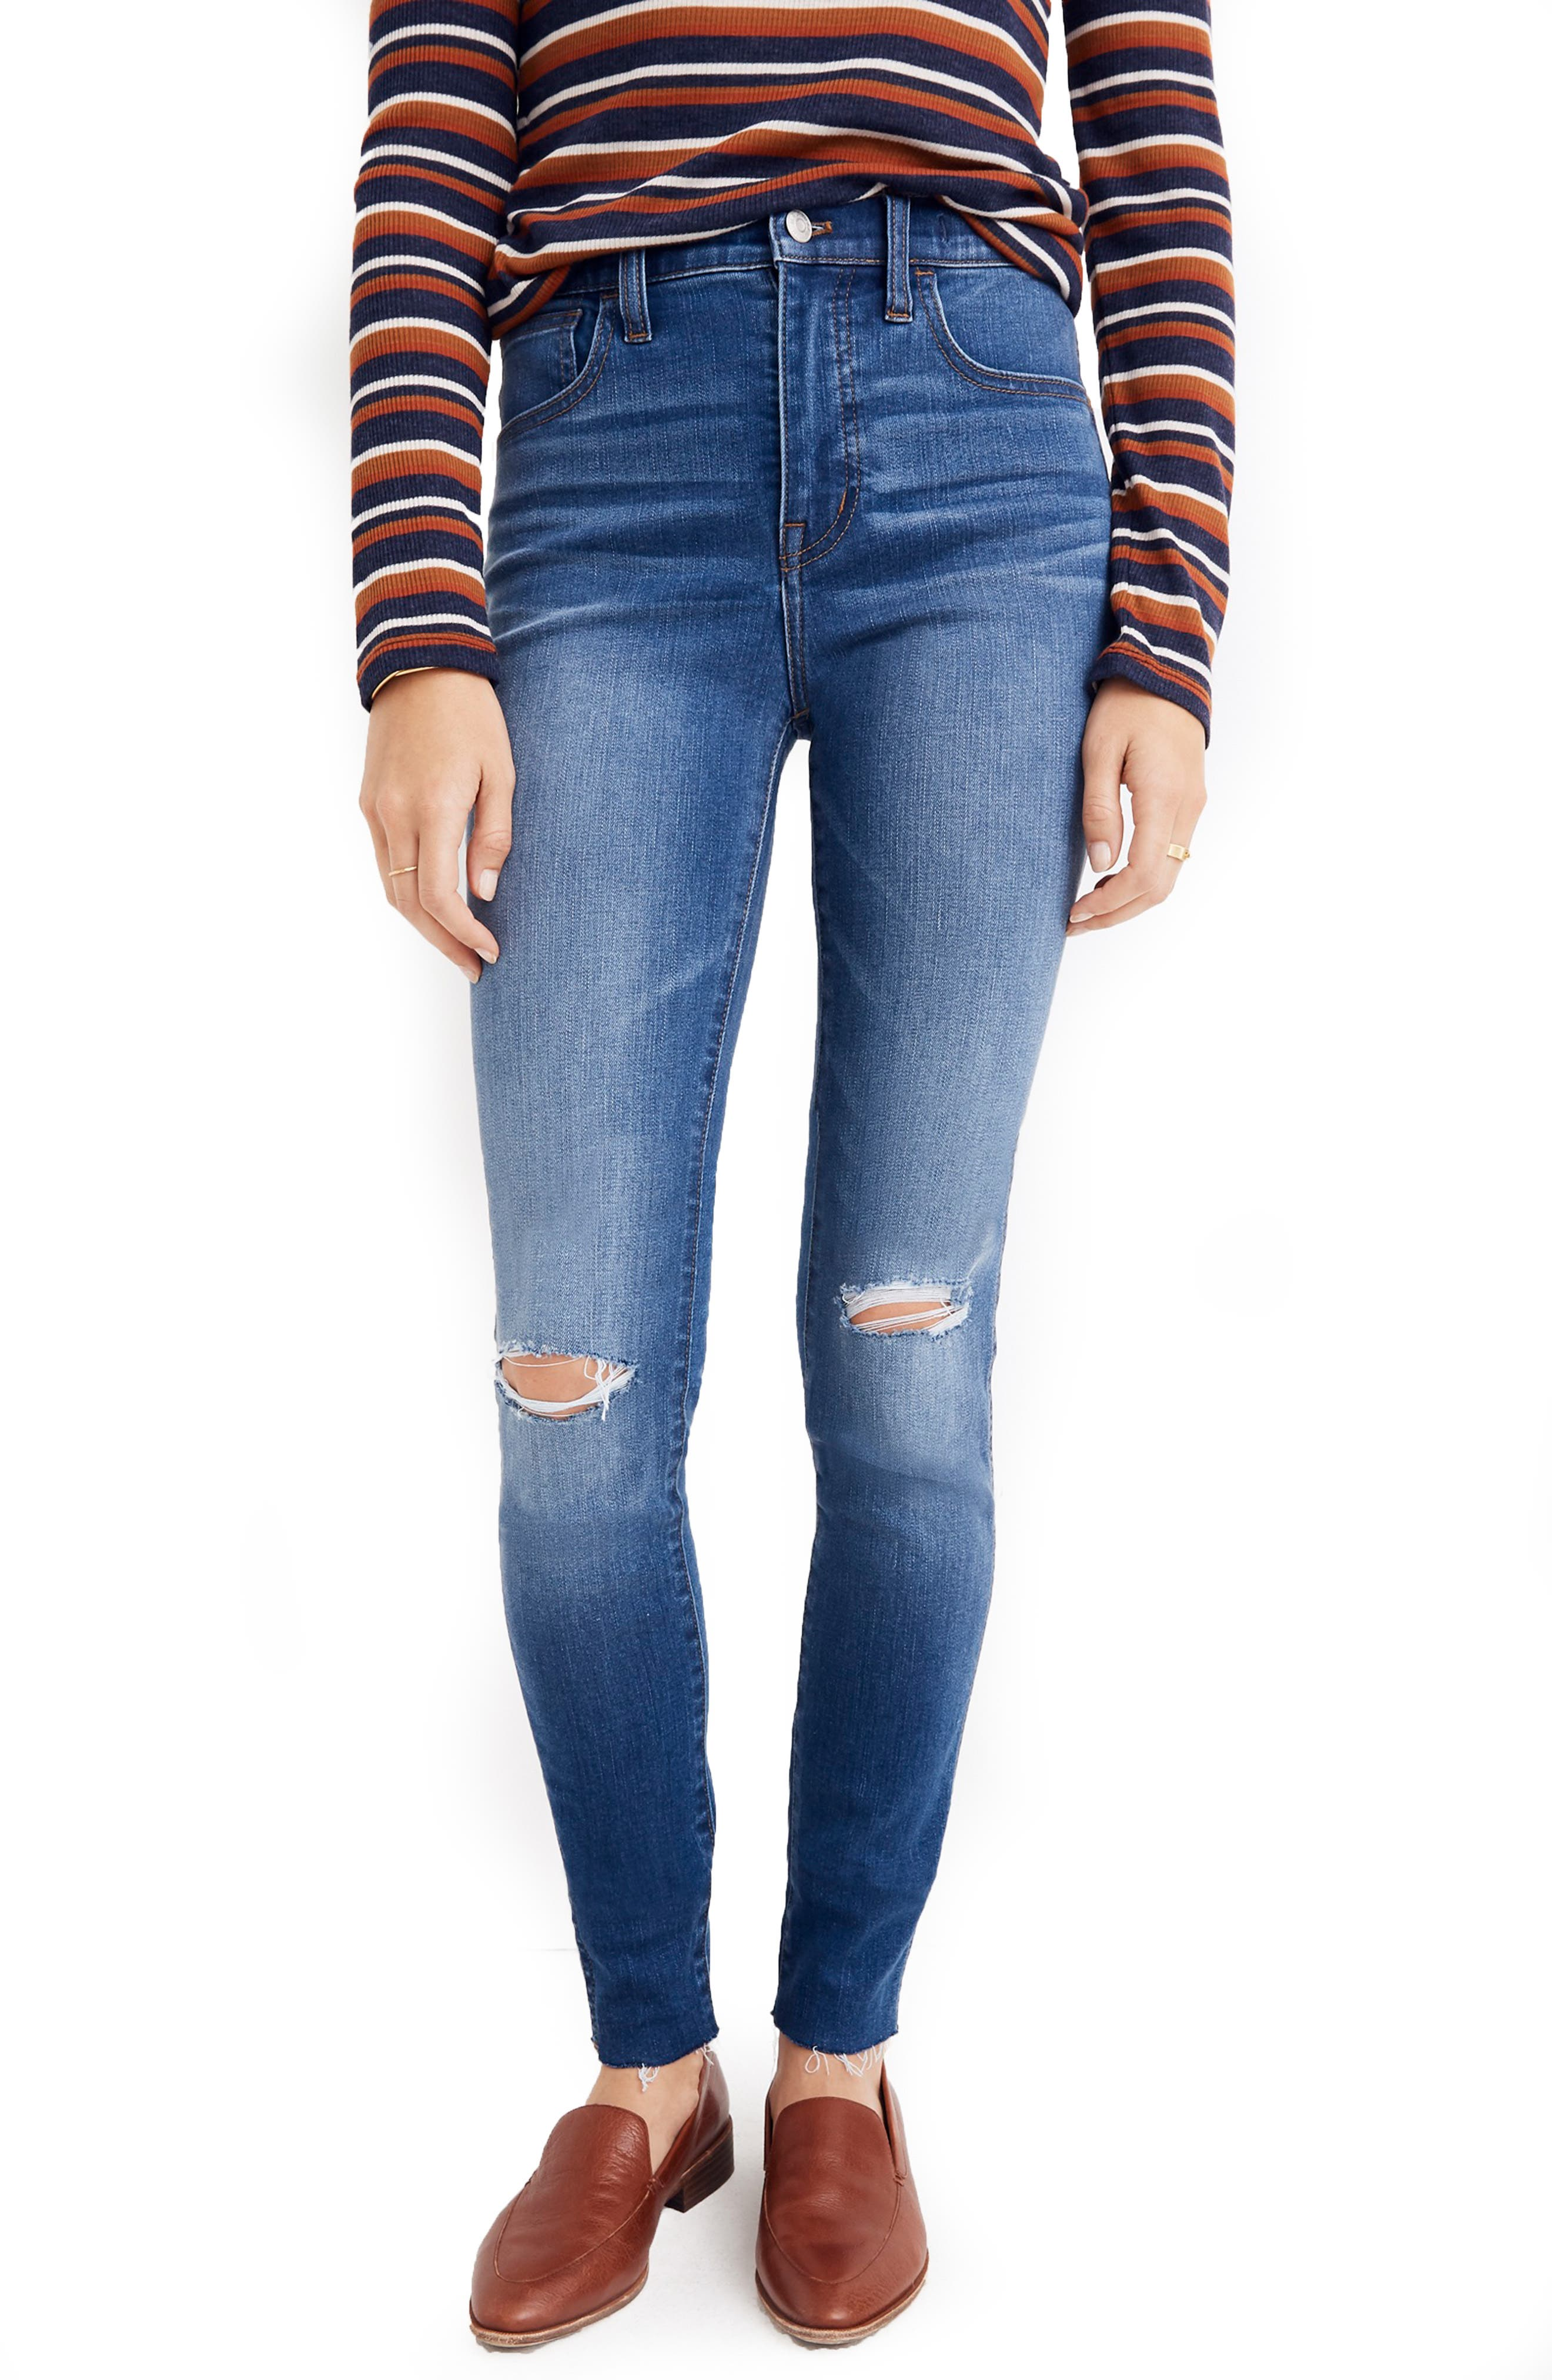 MADEWELL Roadtripper Ripped High Waist Ankle Skinny Jeans, Main, color, THE ROAD TRIPPER W/ SLIT KNEES